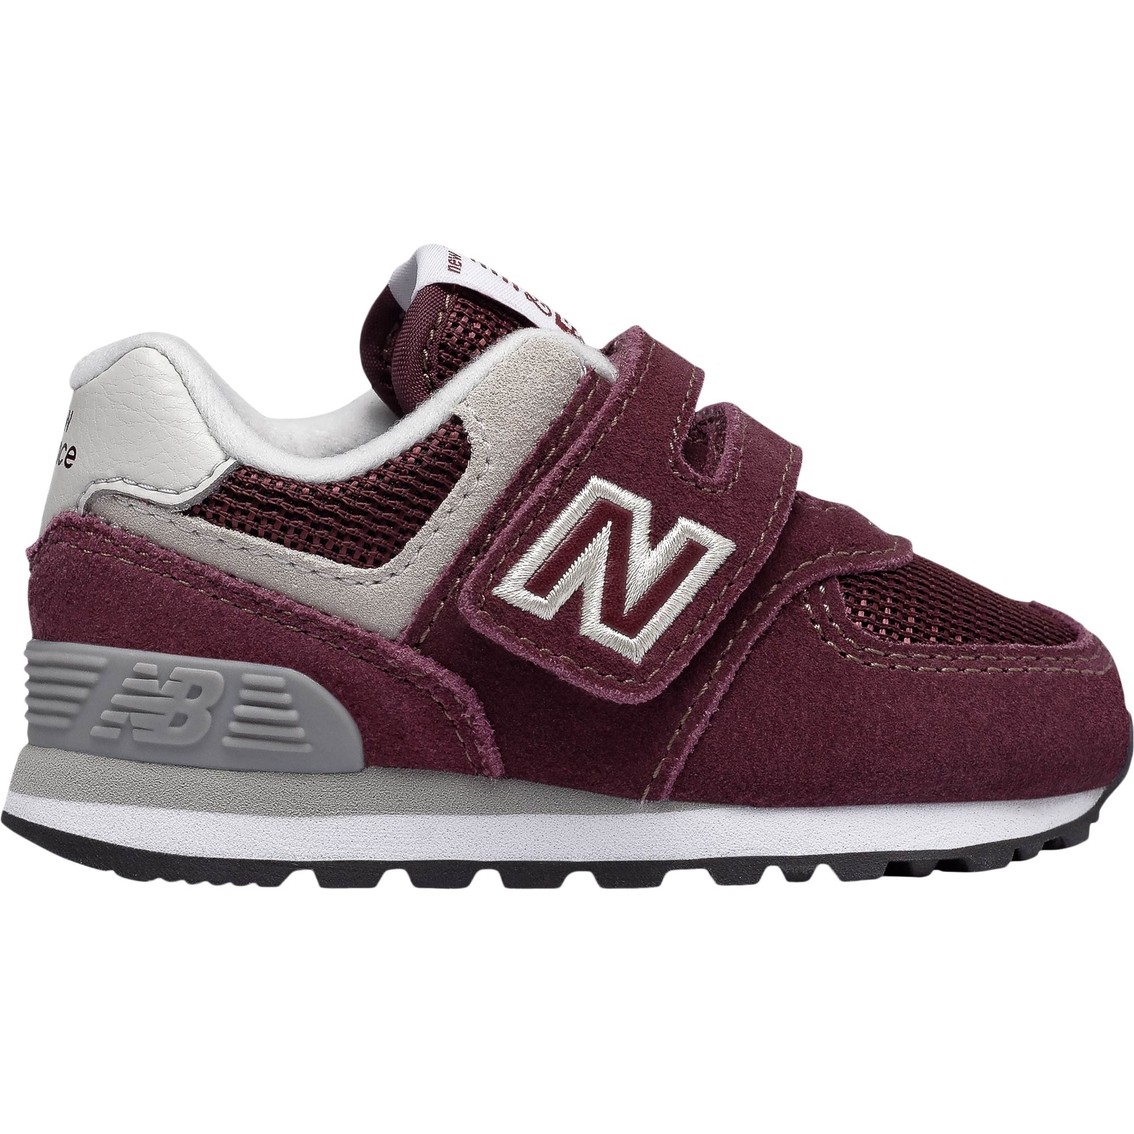 meet 45bdb 15ae3 New Balance Toddler Boys IV574GV Core Shoes